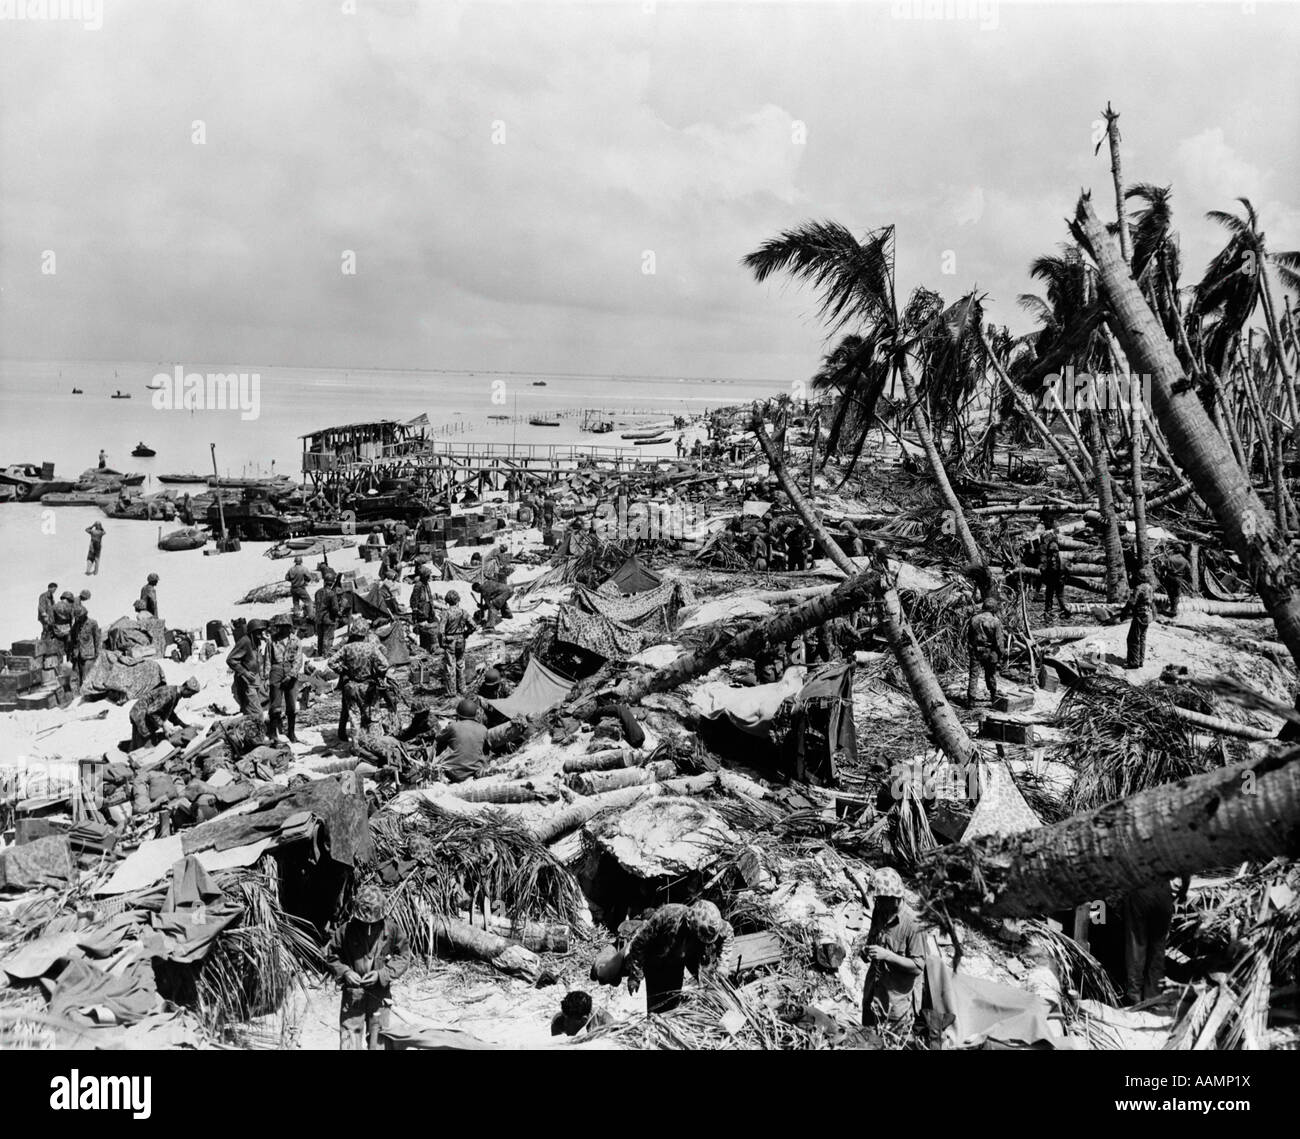 1940s BEACH AT TARAWA AS THE 6TH REGIMENT OF MARINES LANDS - Stock Image